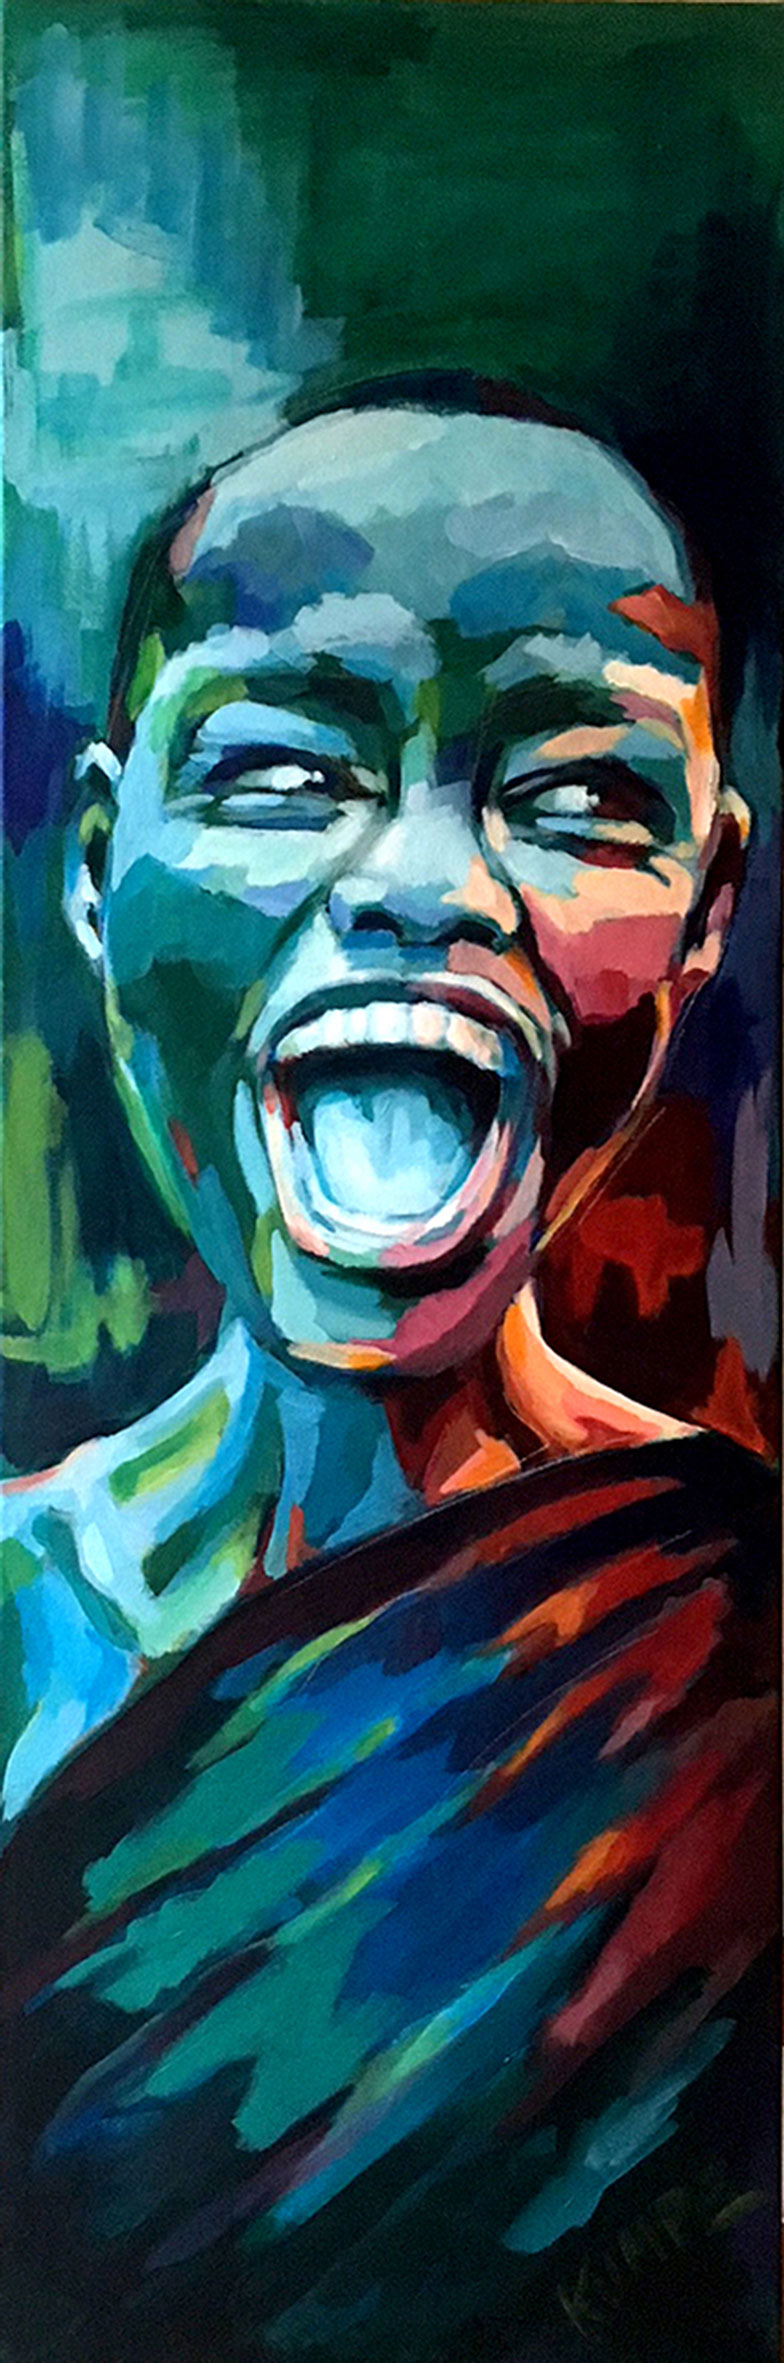 Laughing_Beauty2_Acryl_120x40